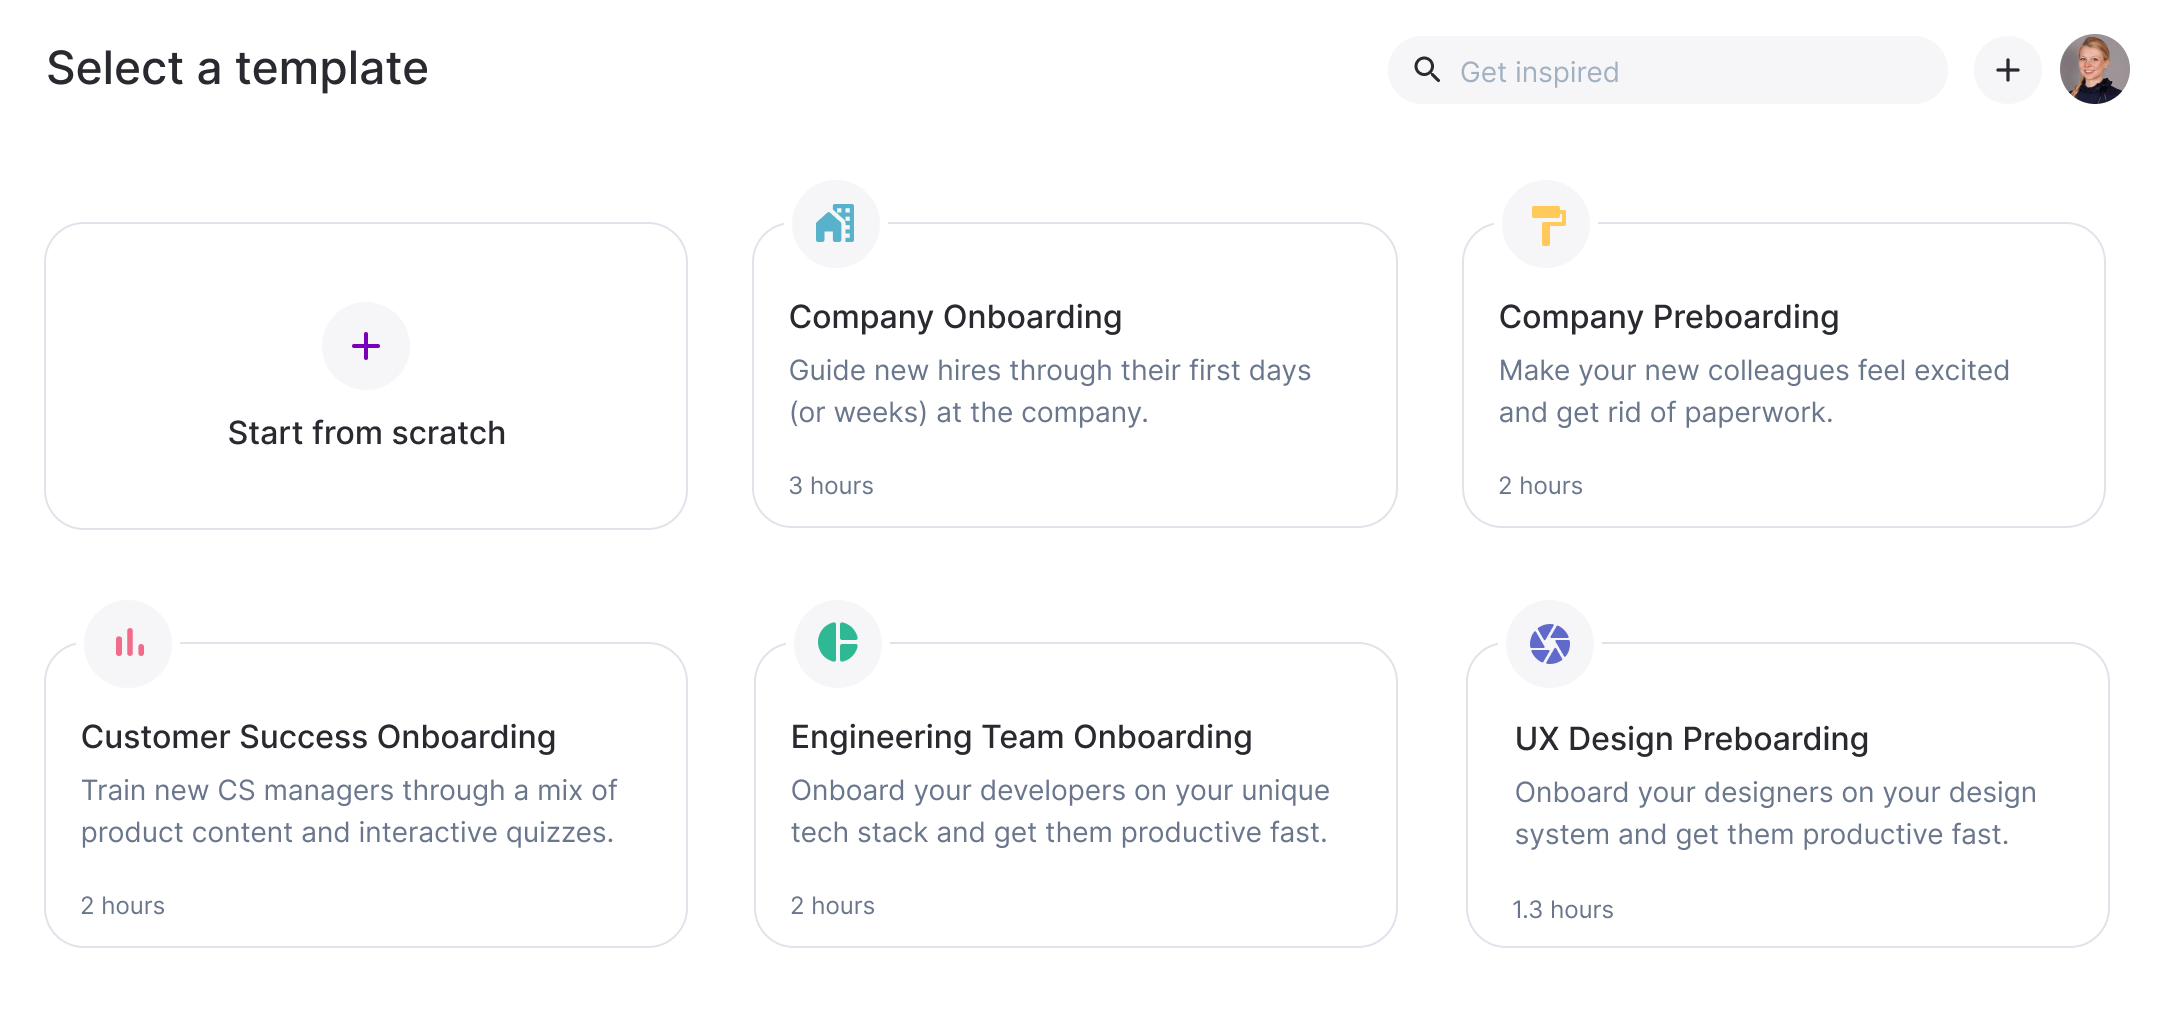 Template selection for different onboarding journeys. templates reflect best practices for onboarding new hires.